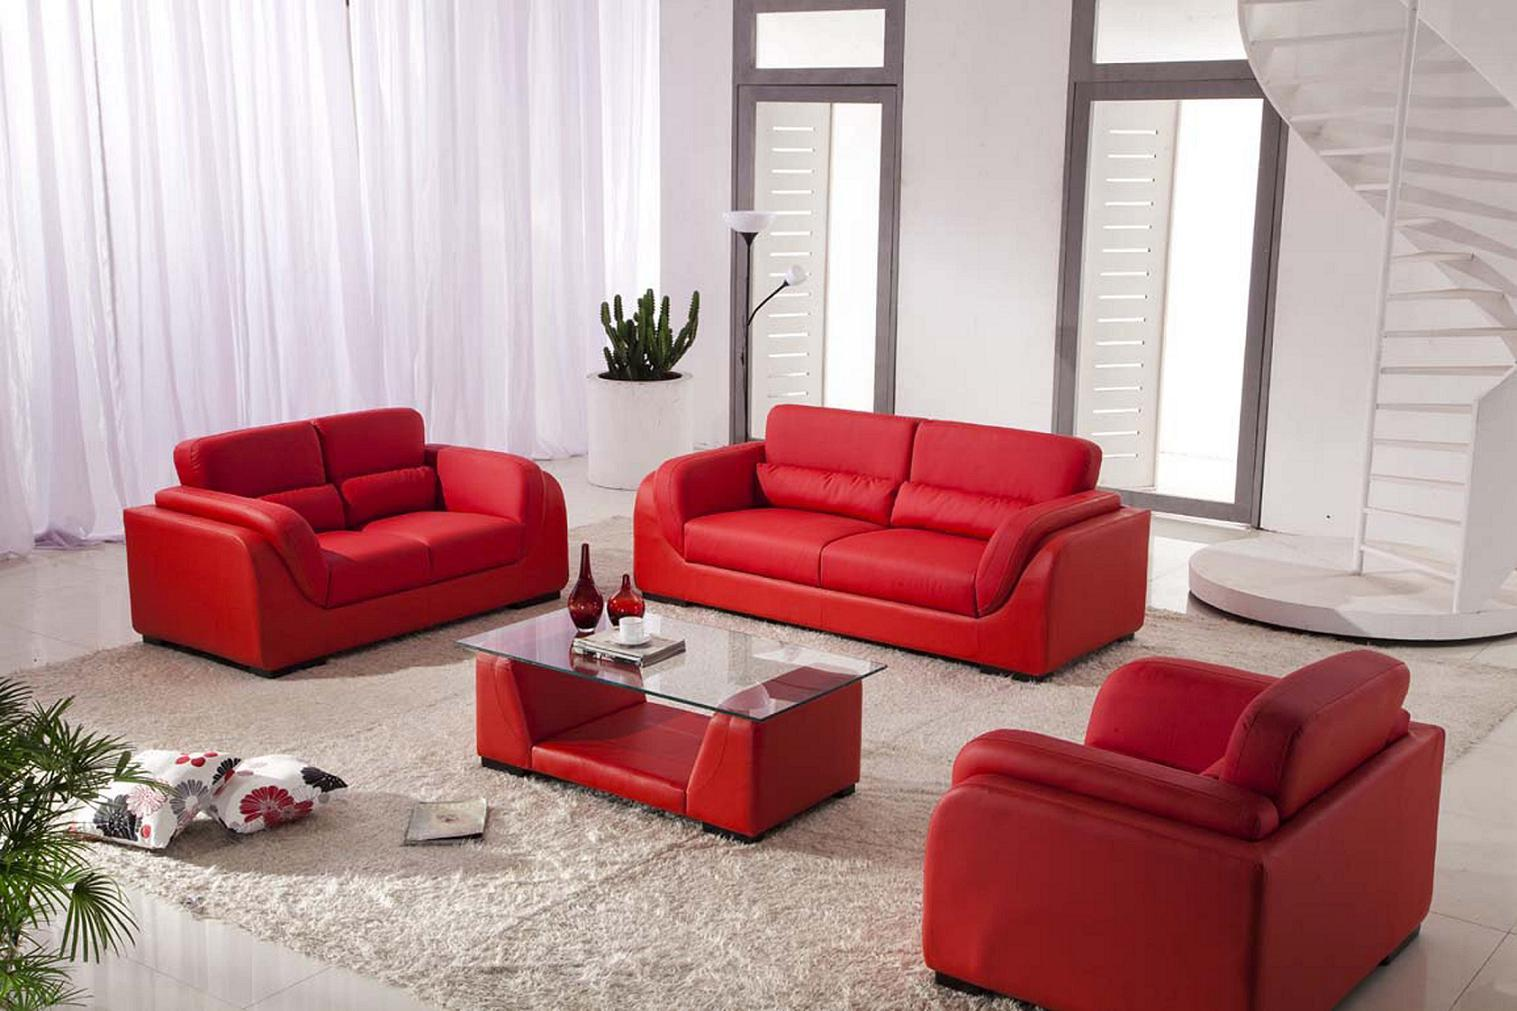 $1 699 RED BONDED LEATHER CONTEMPORARY 3PC SOFA SET W COFFEE TABLE 888 505 0501